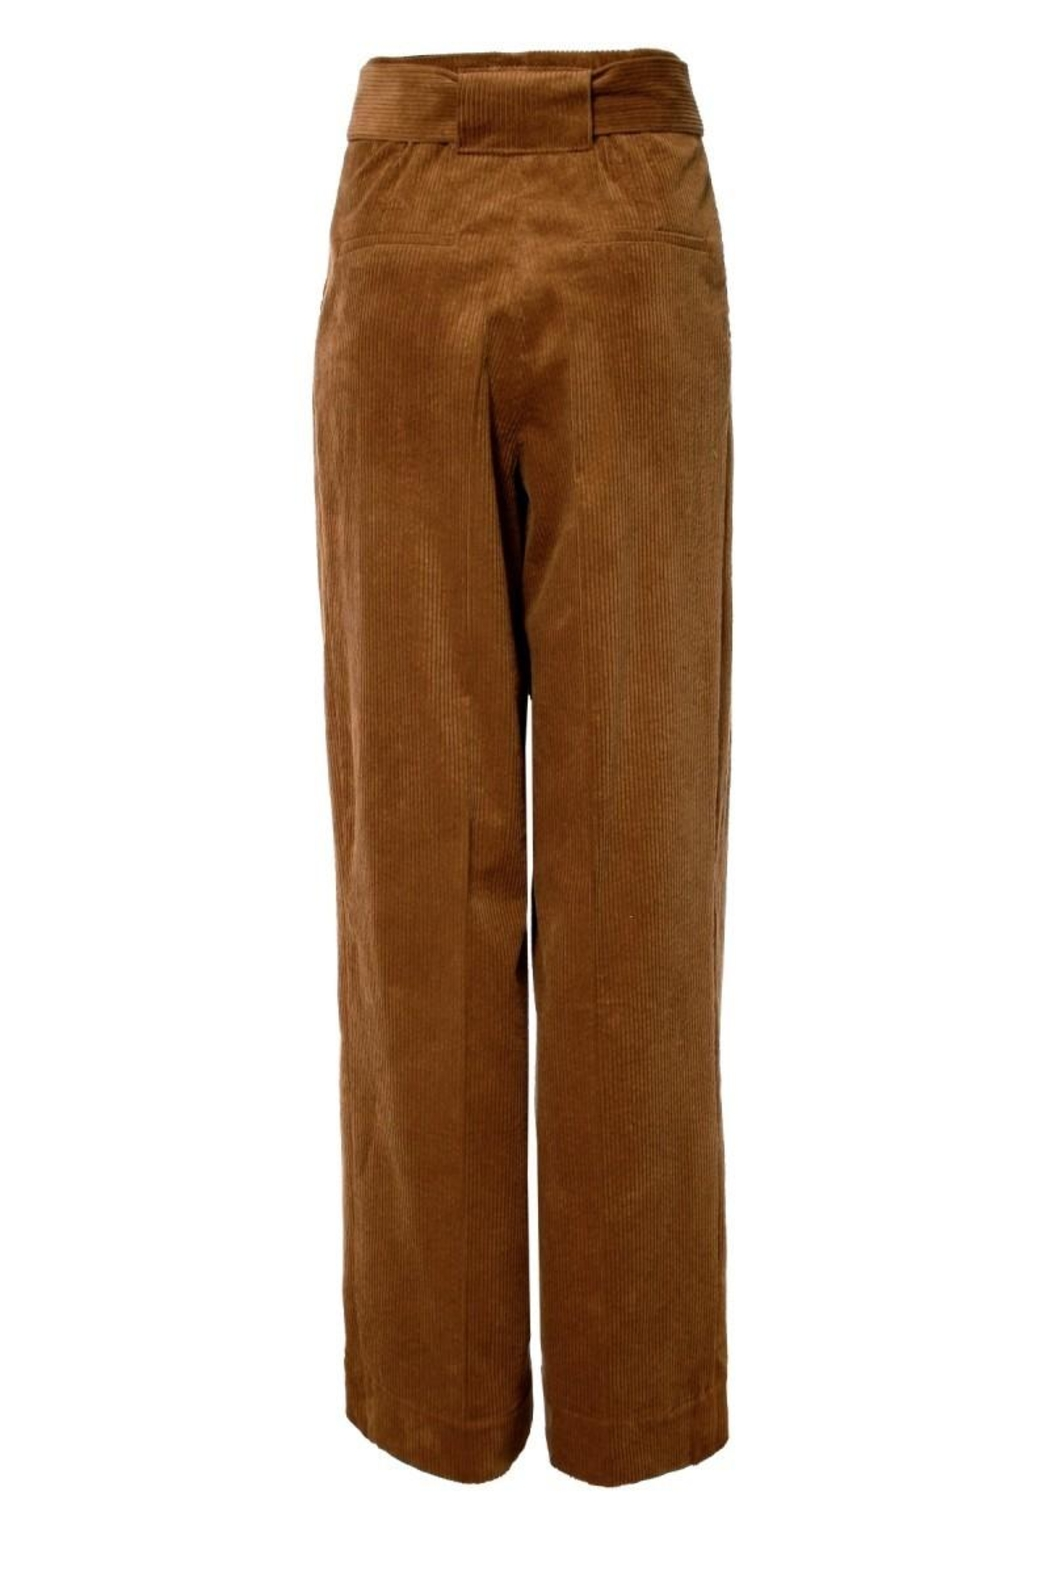 AGGI Pants Janice Toffee - Side Cropped Image